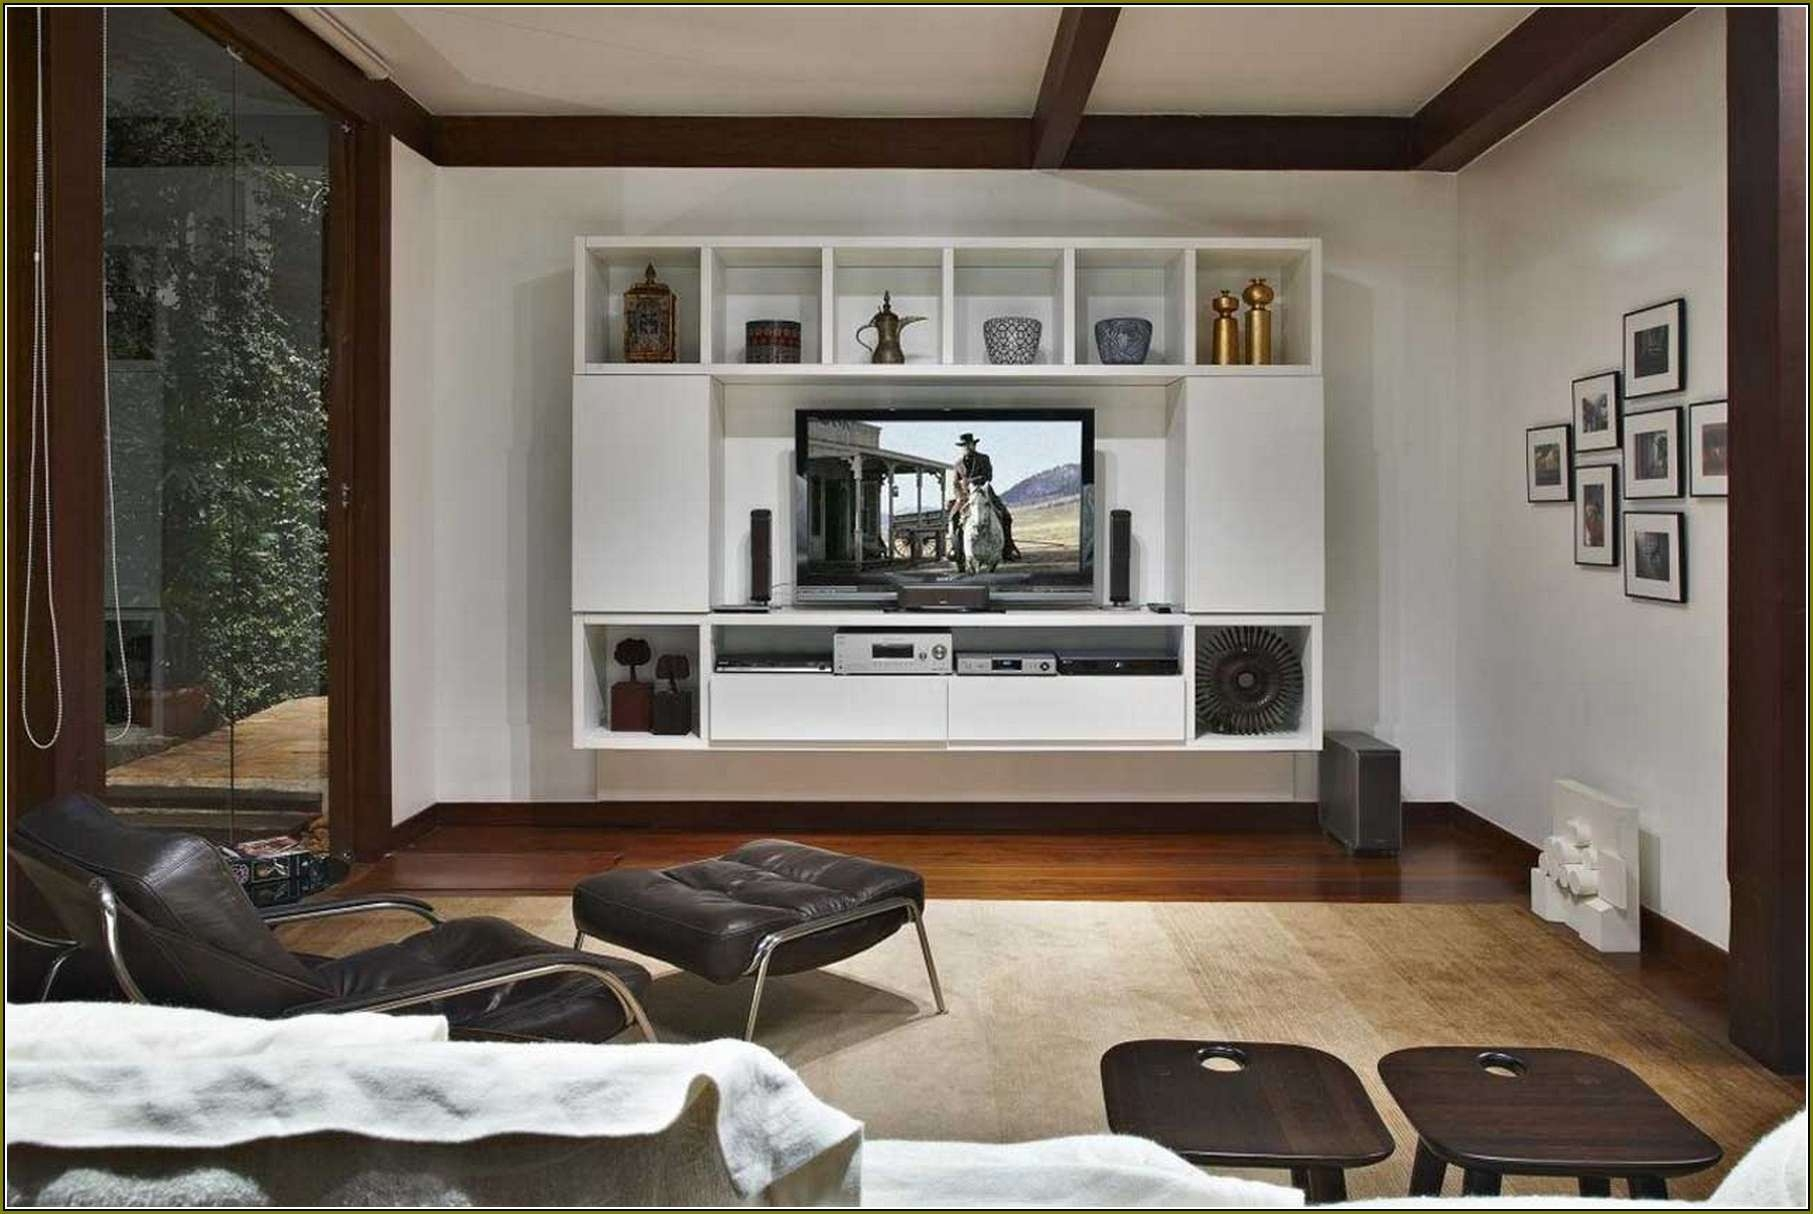 Flat Screen Tv Cabinet Ideas | Home Design Ideas Pertaining To Wall Mounted Tv Cabinets With Sliding Doors (View 5 of 20)